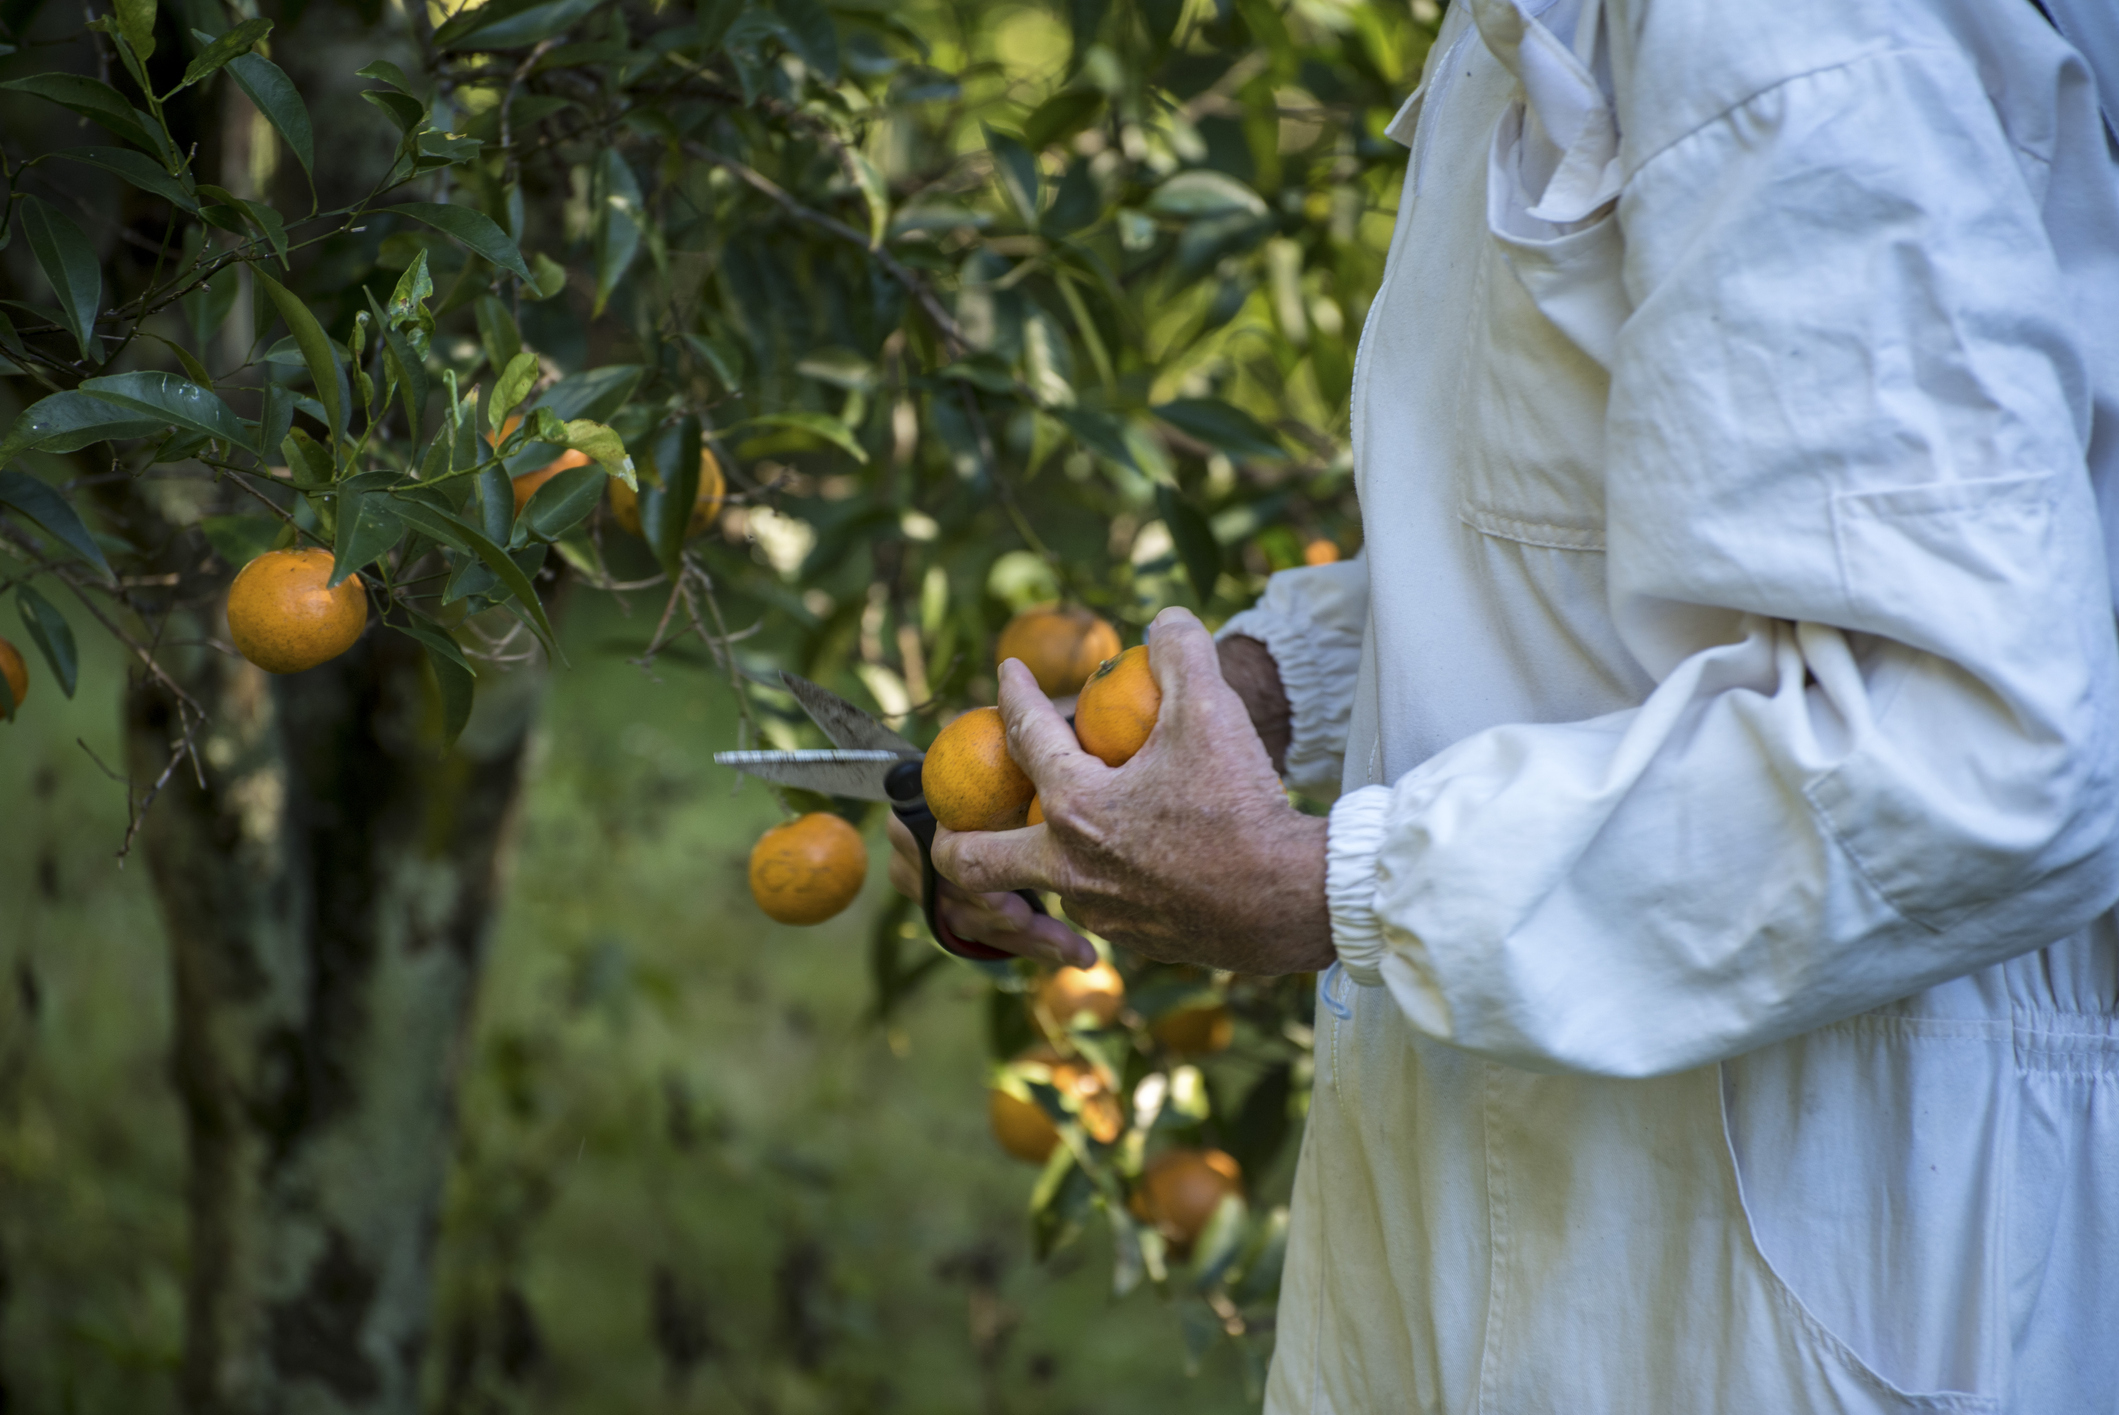 Pacific seasonal worker deal contingent on states' approval